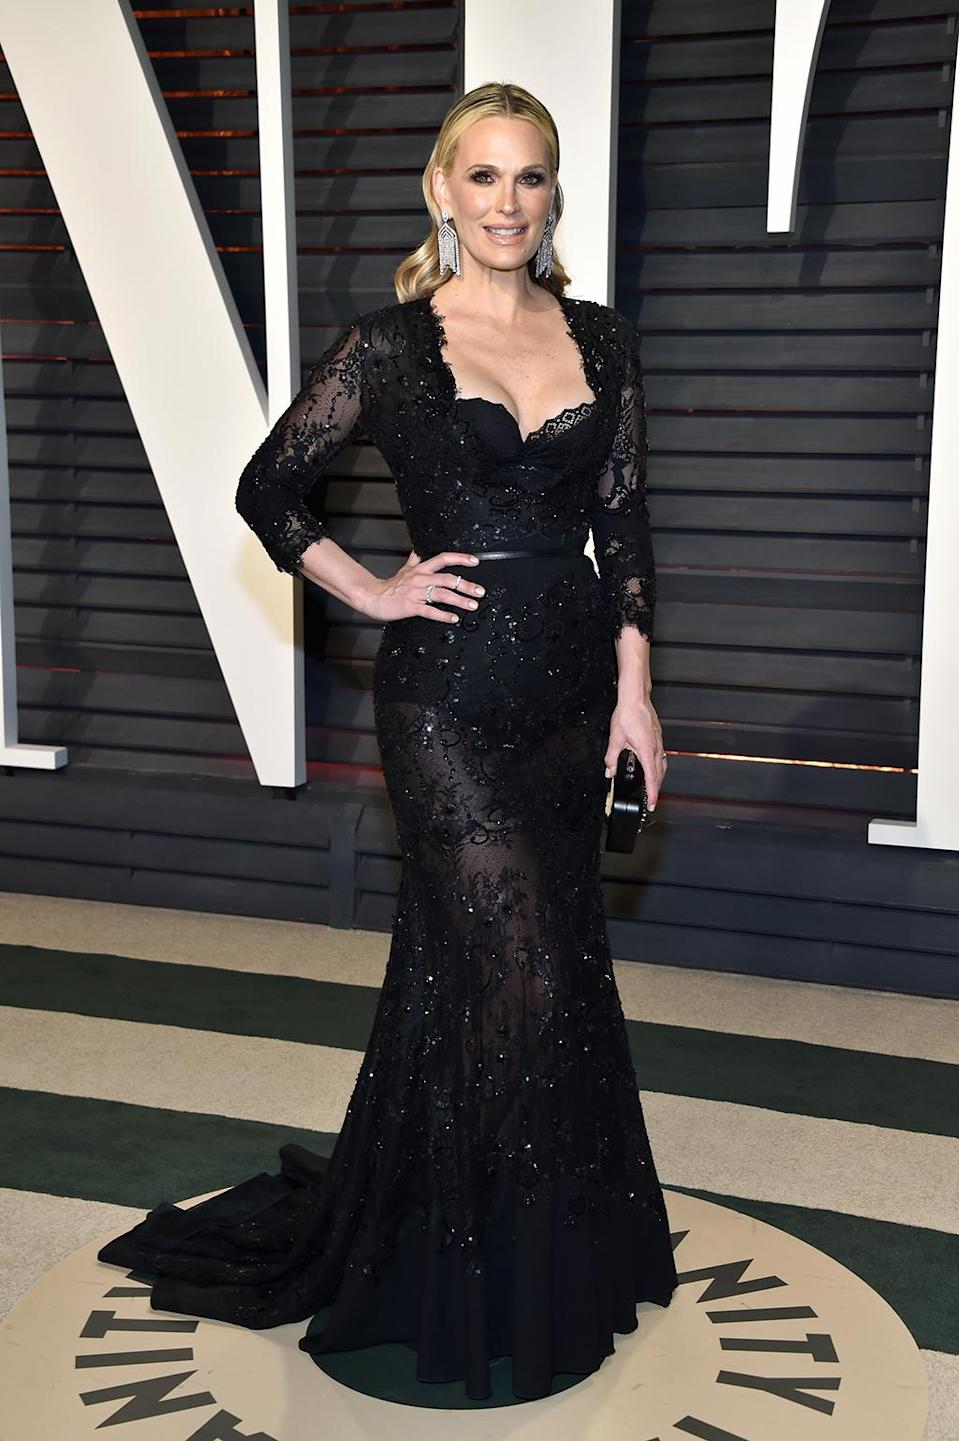 <p>Molly Sims attends the 2017 Vanity Fair Oscar Party hosted by Graydon Carter at Wallis Annenberg Center for the Performing Arts on February 26, 2017 in Beverly Hills, California. (Photo by Pascal Le Segretain/Getty Images) </p>